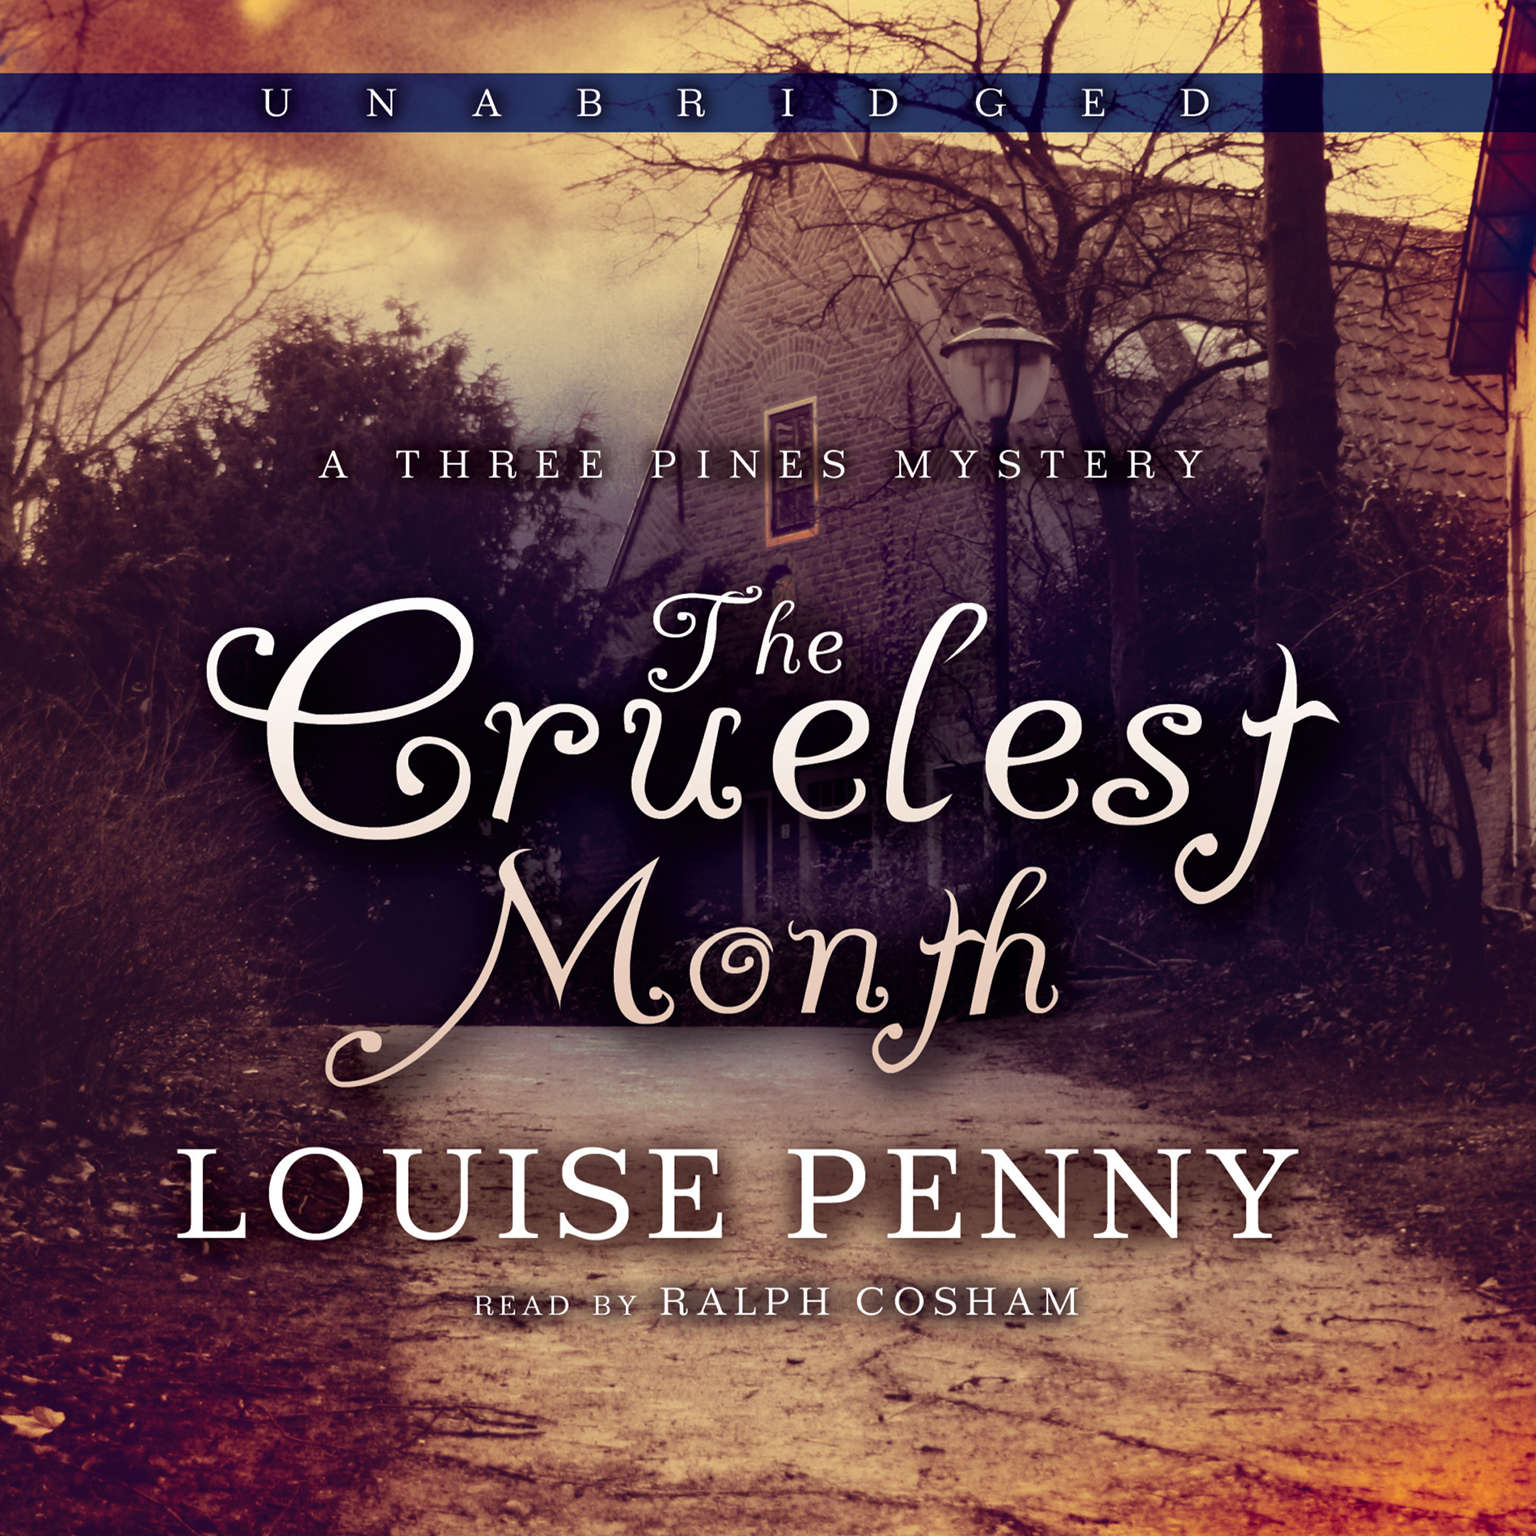 Printable The Cruelest Month: A Three Pines Mystery Audiobook Cover Art